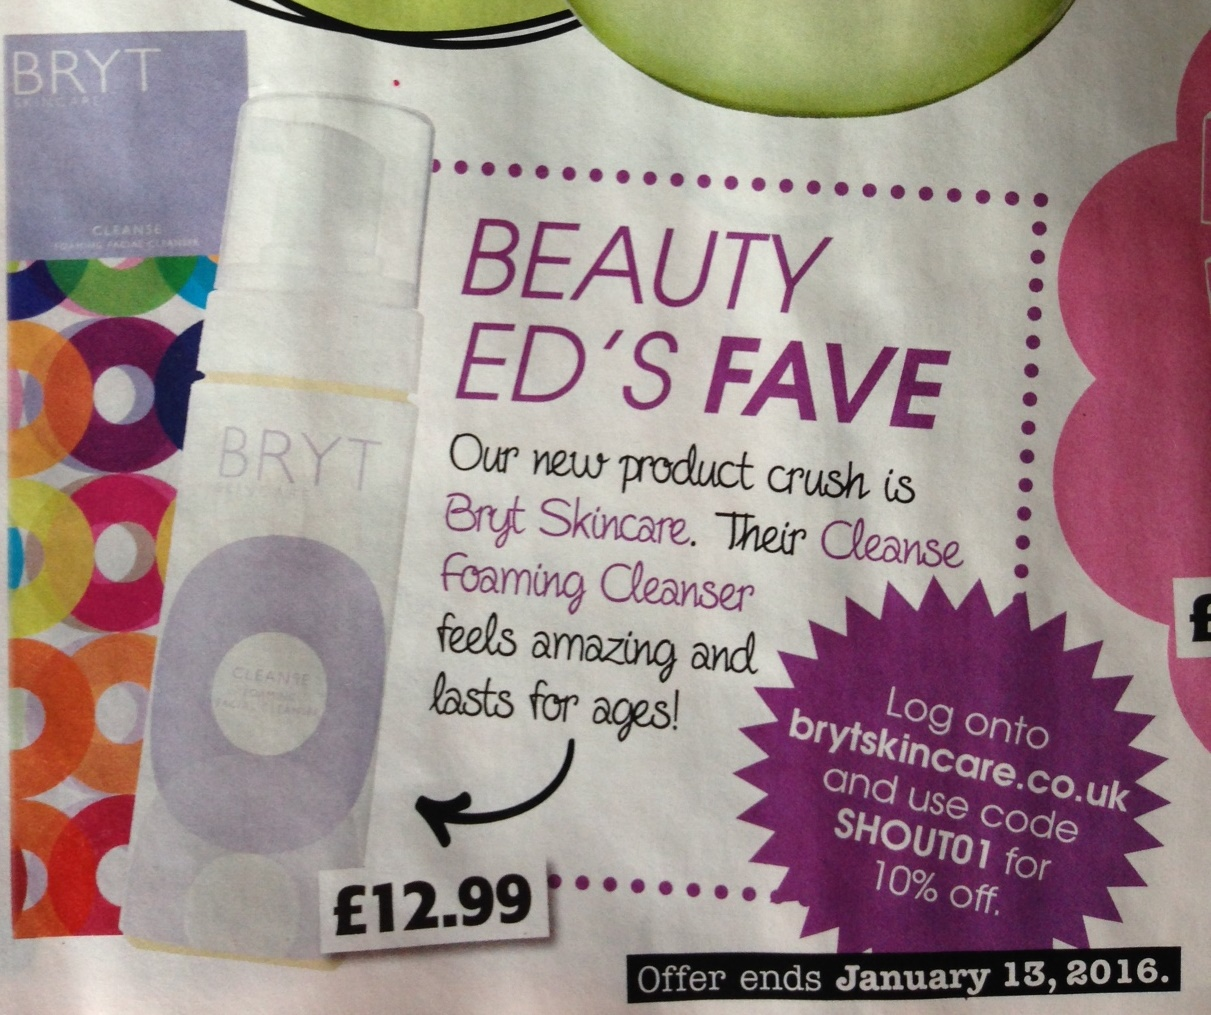 Our Cleanser is in Shout Magazine as Beauty Editor's fave!